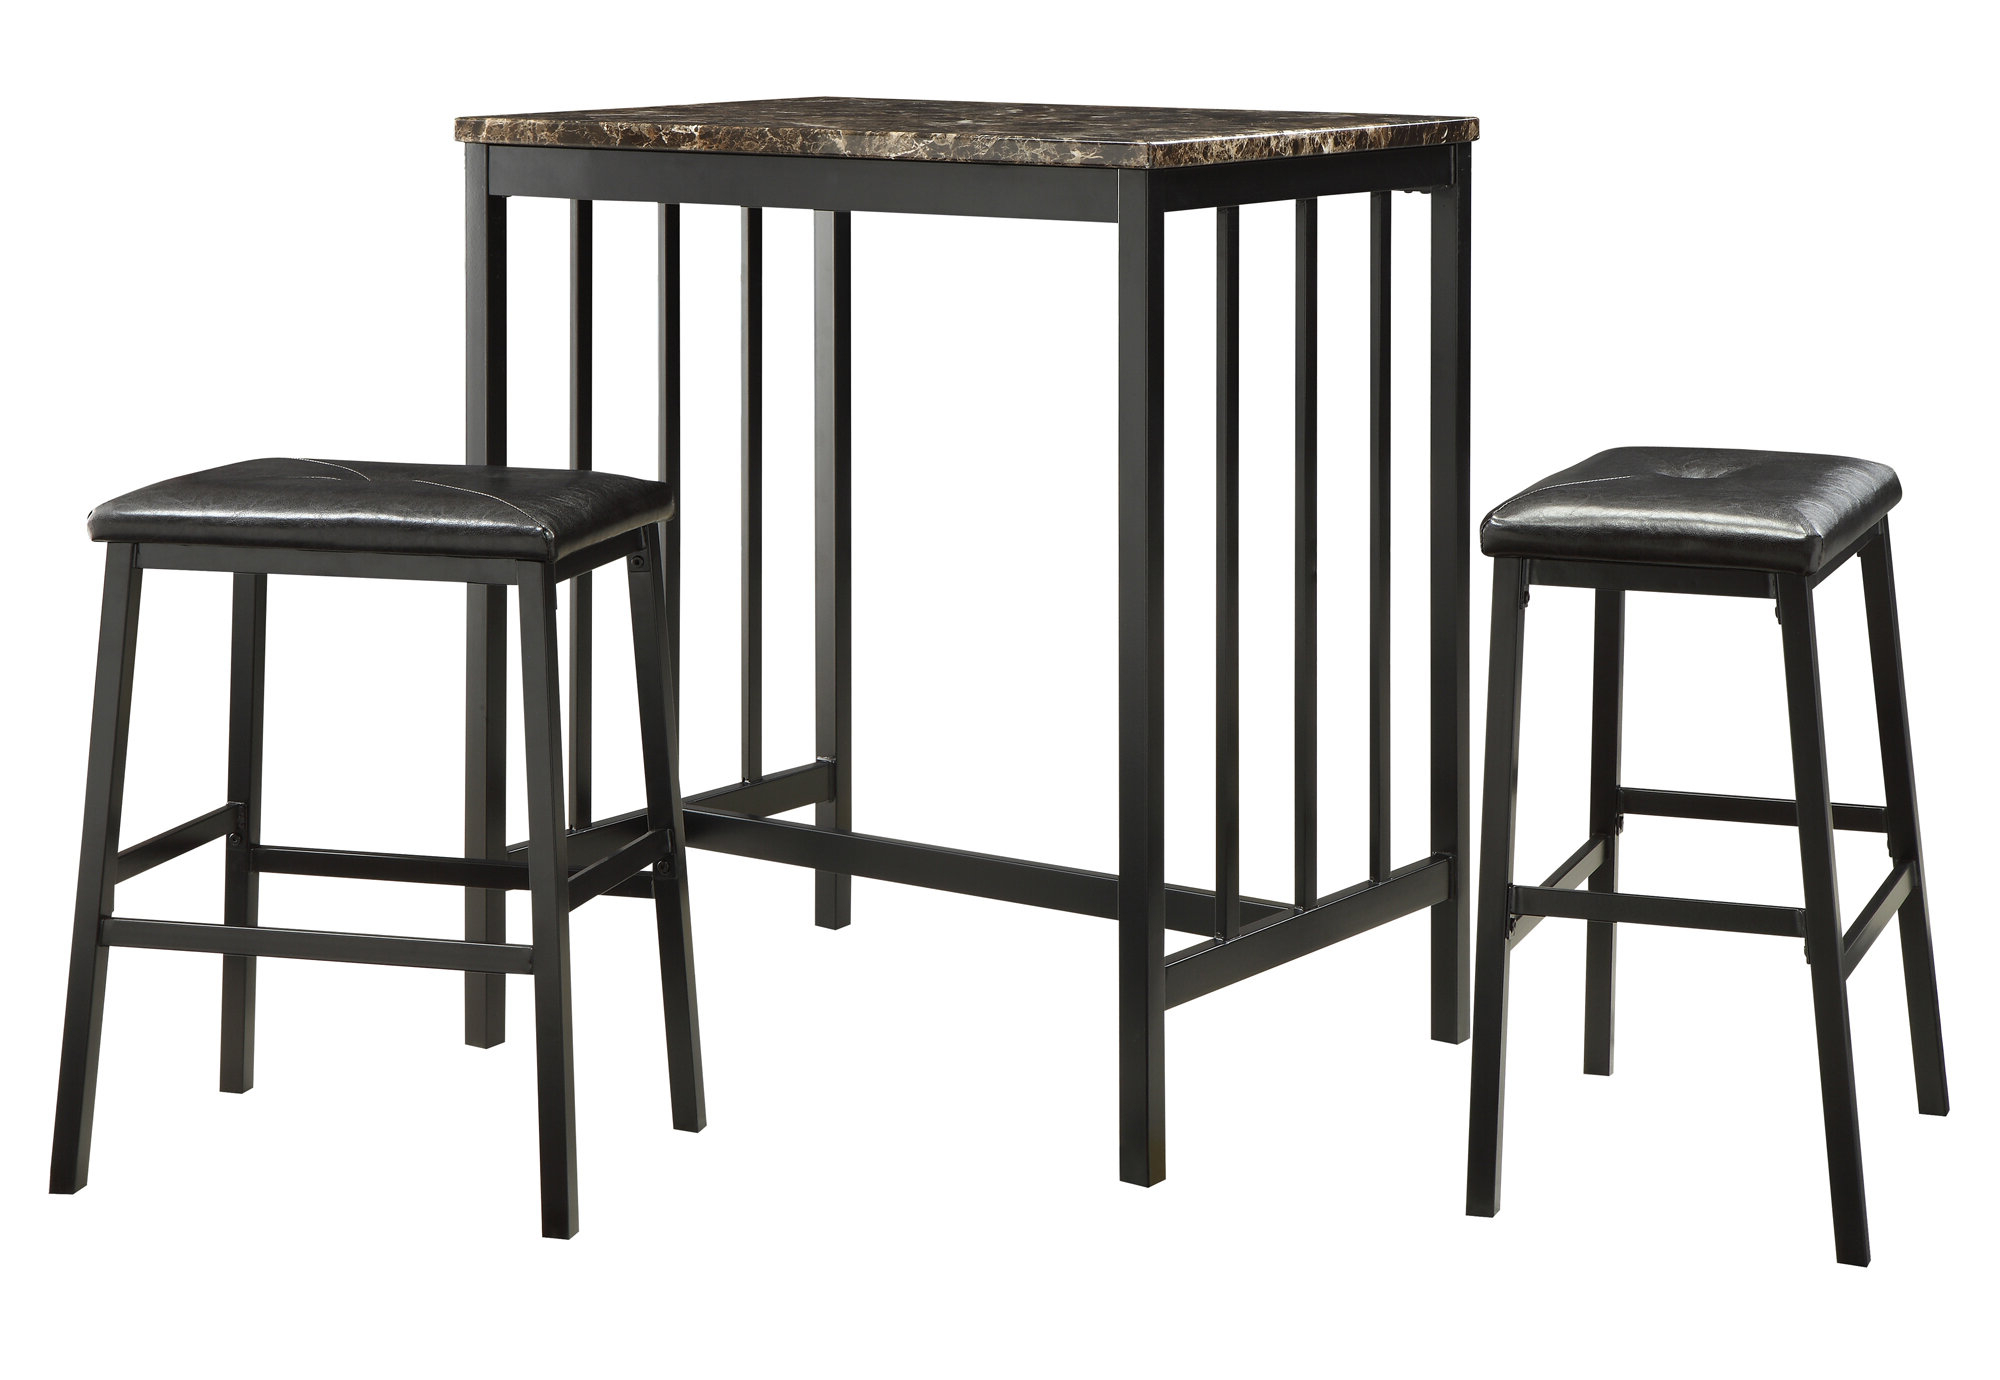 Anette 3 Piece Counter Height Dining Set Pertaining To 2018 Mizpah 3 Piece Counter Height Dining Sets (Gallery 6 of 20)